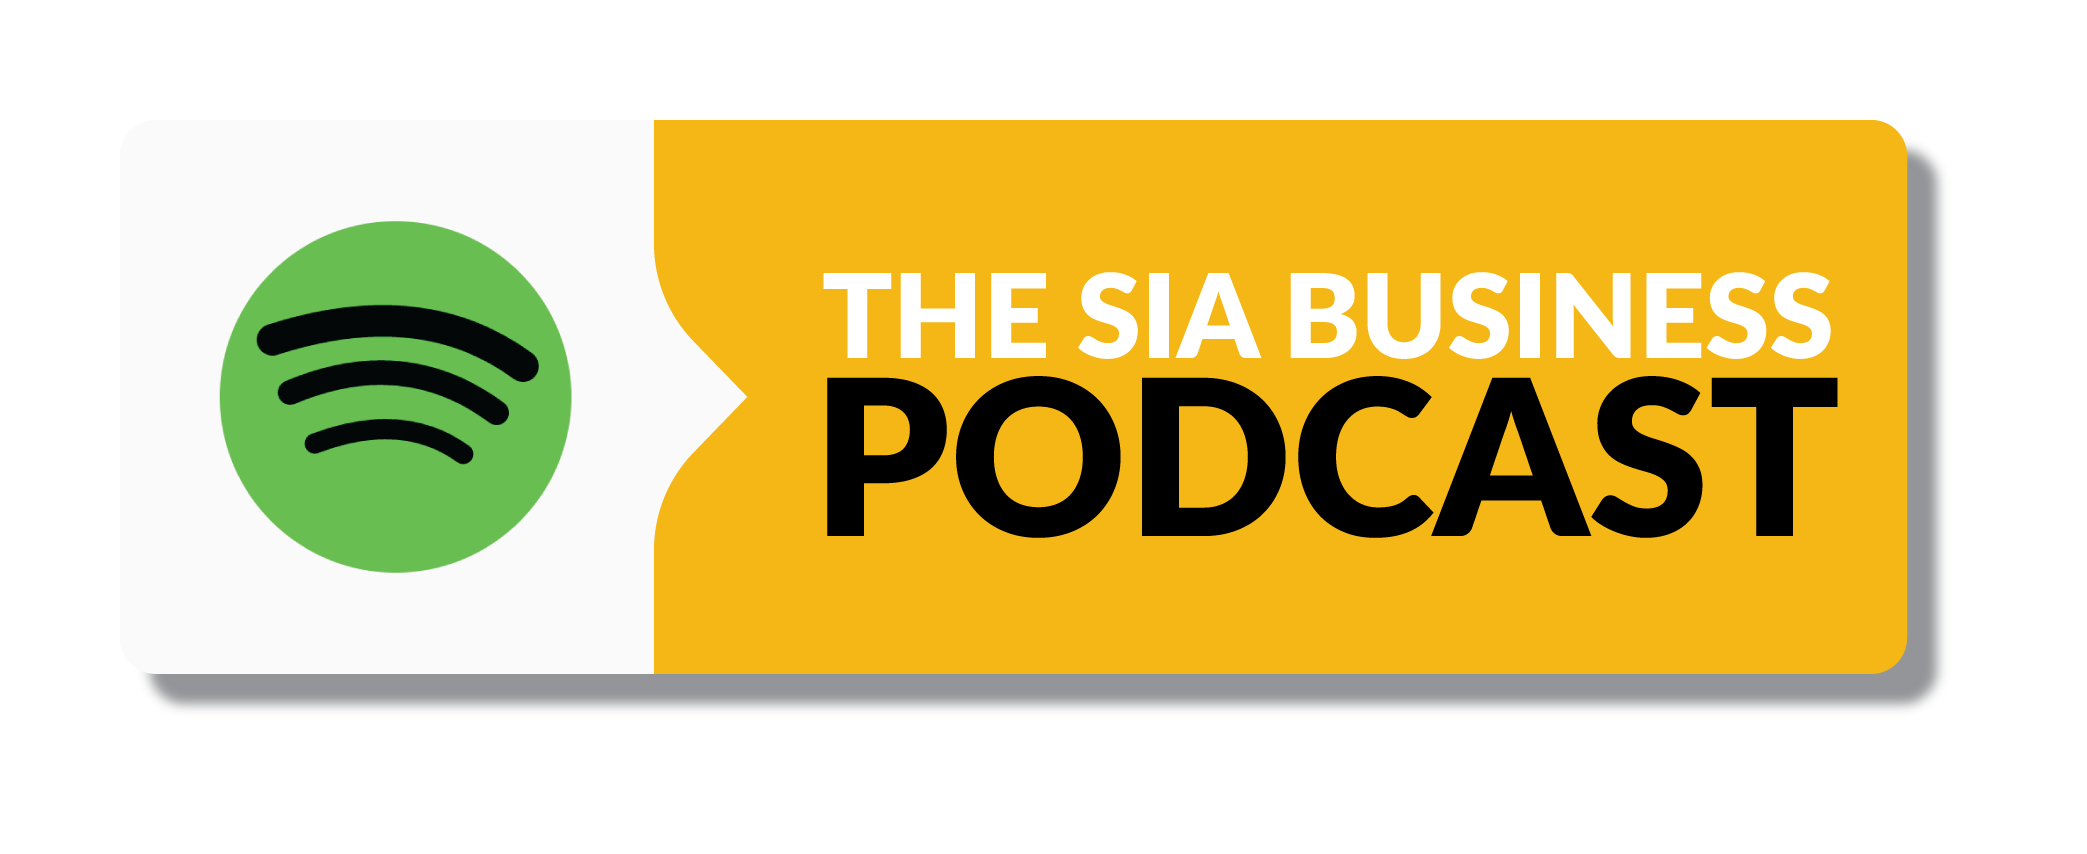 The SIA Business Podcast on Spotify